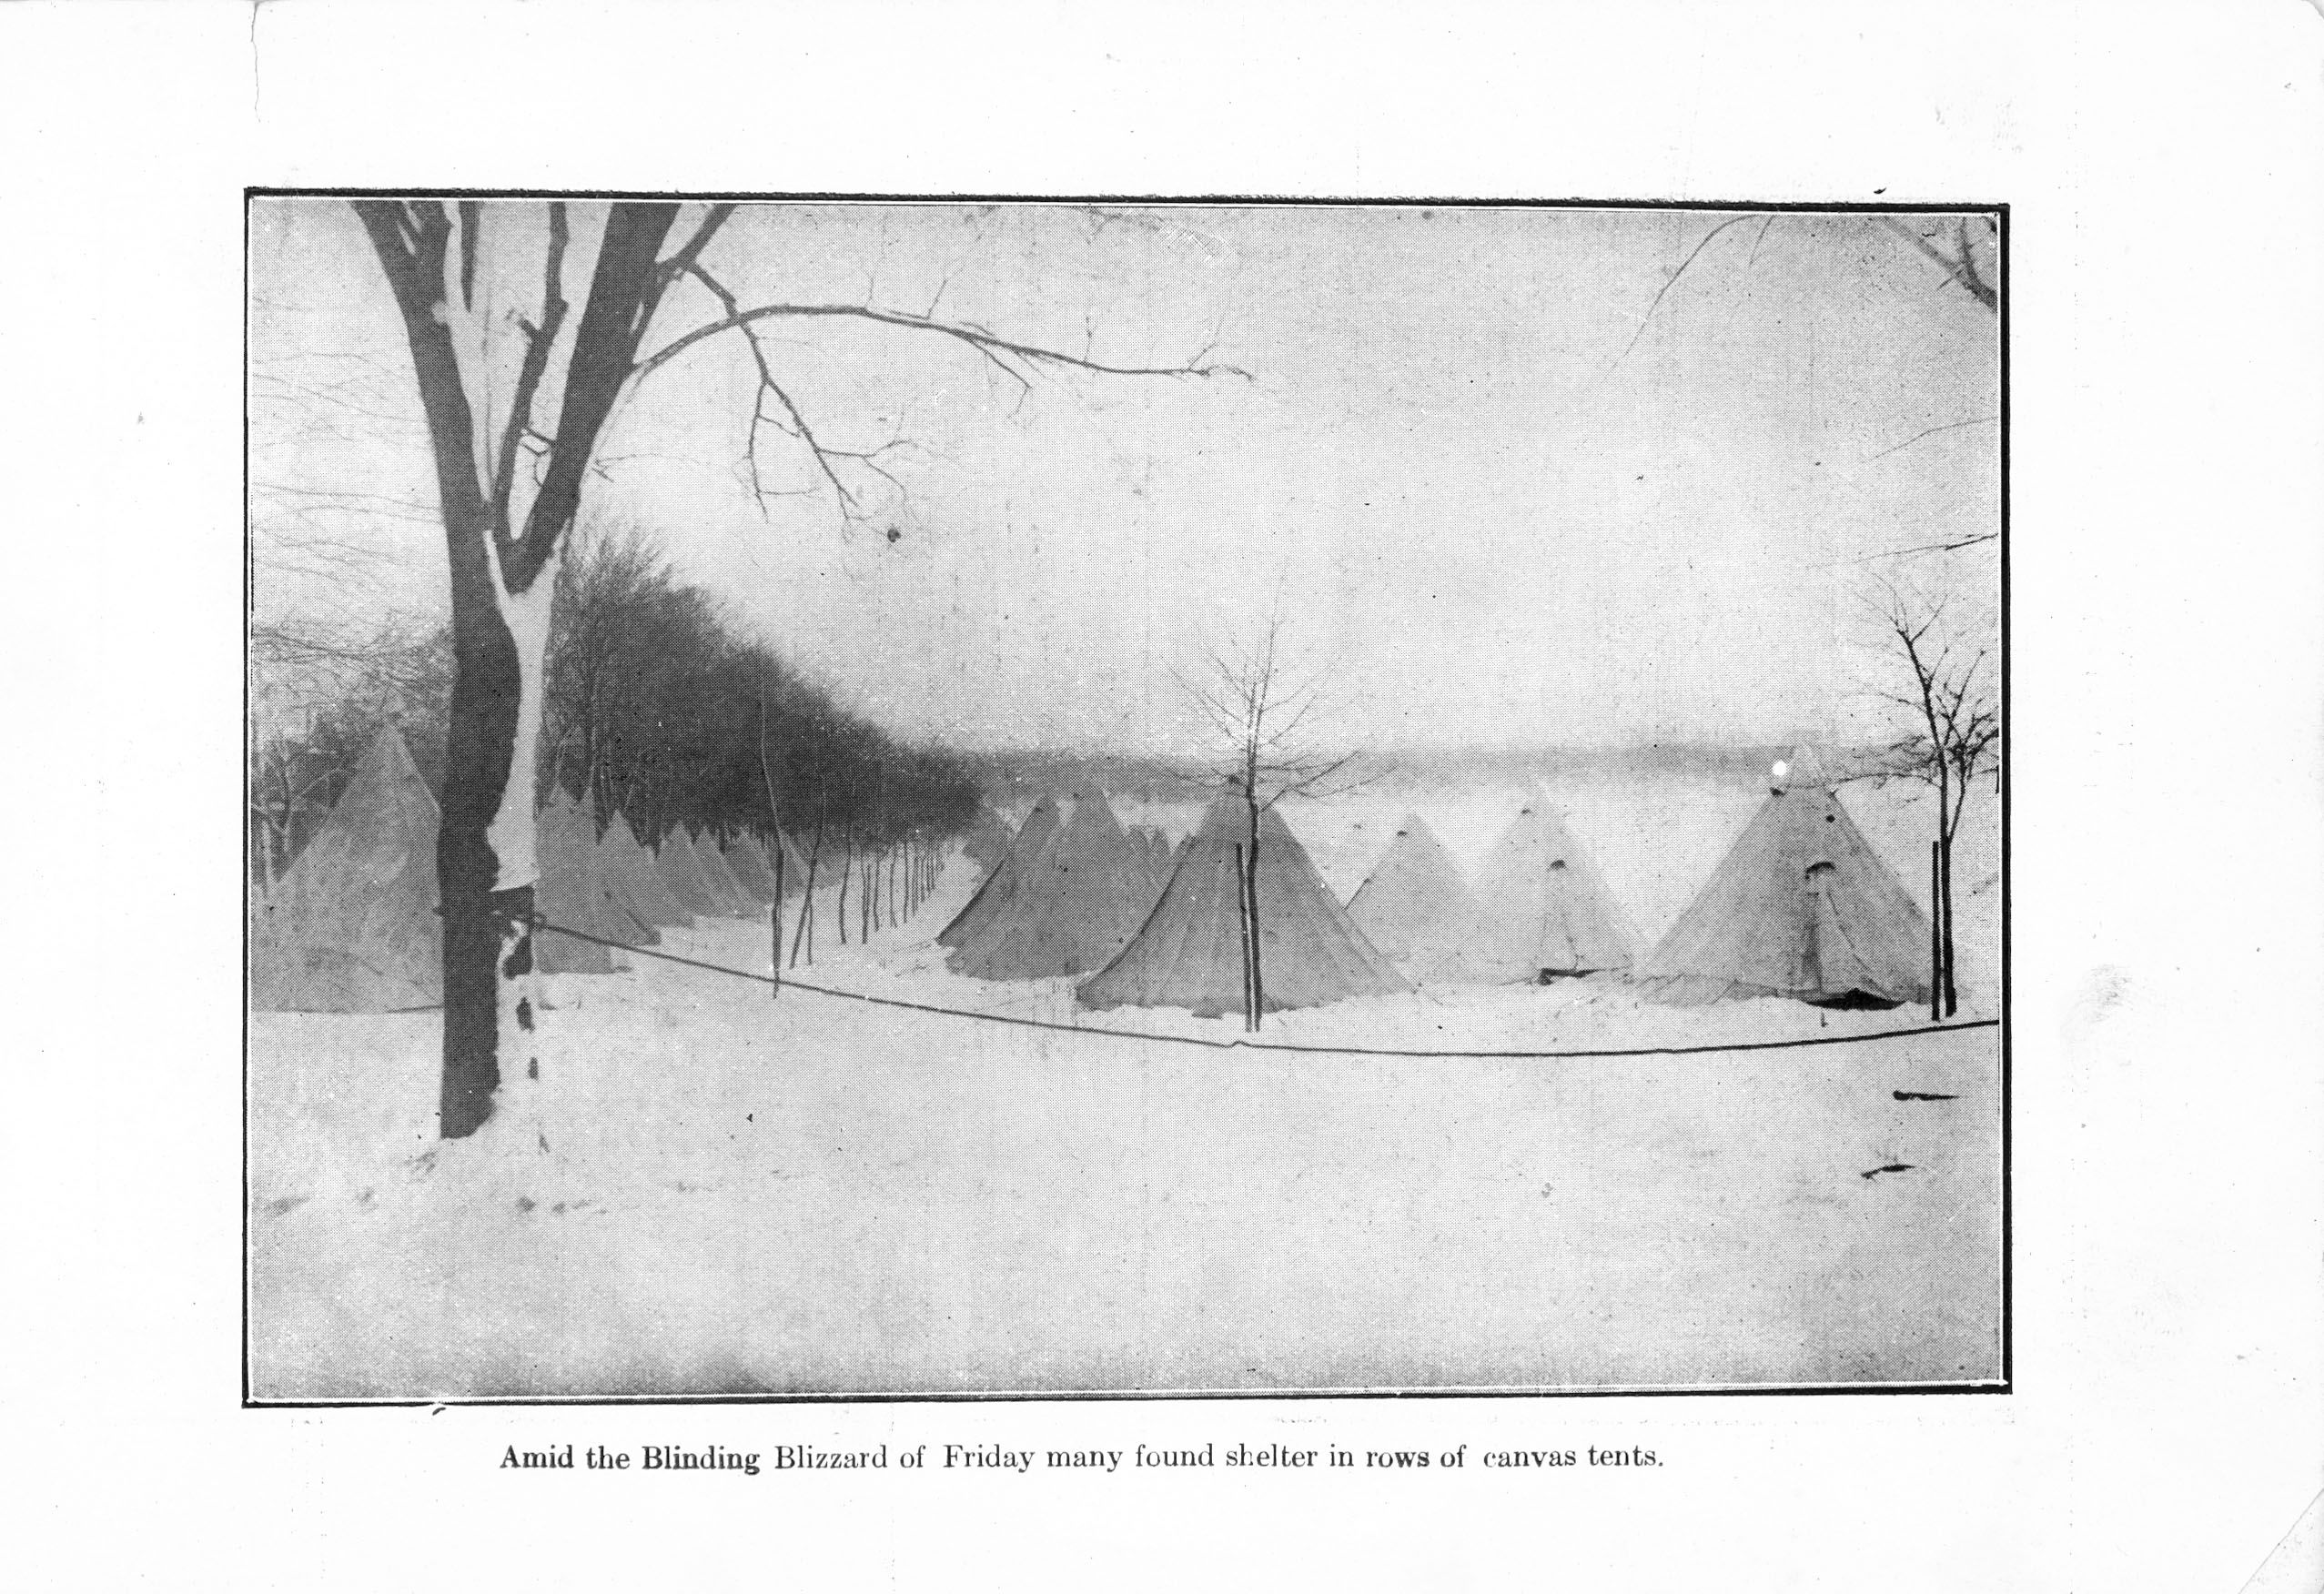 "Black and white photo of rows of canvas tents in the snow, with caption ""Amid the Blinding Blizzard of Friday many found shelter in rows of canvas tents"""